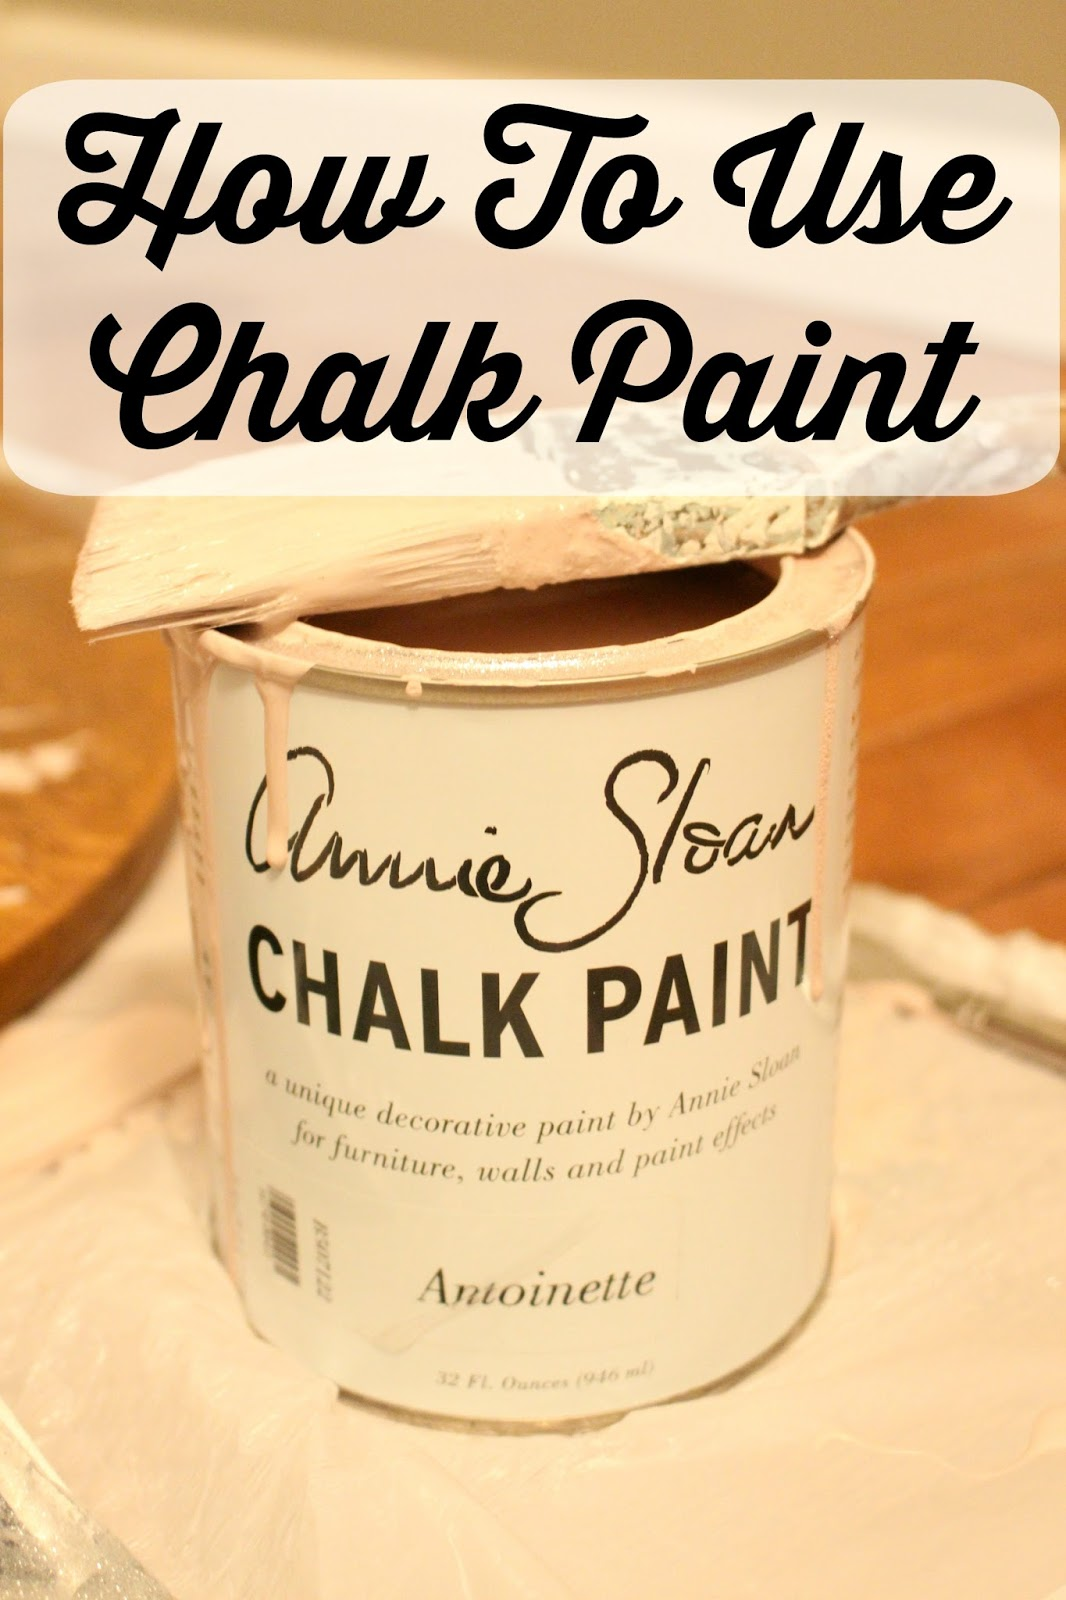 How To Use Chalk Paint - The Glam Farmhouse